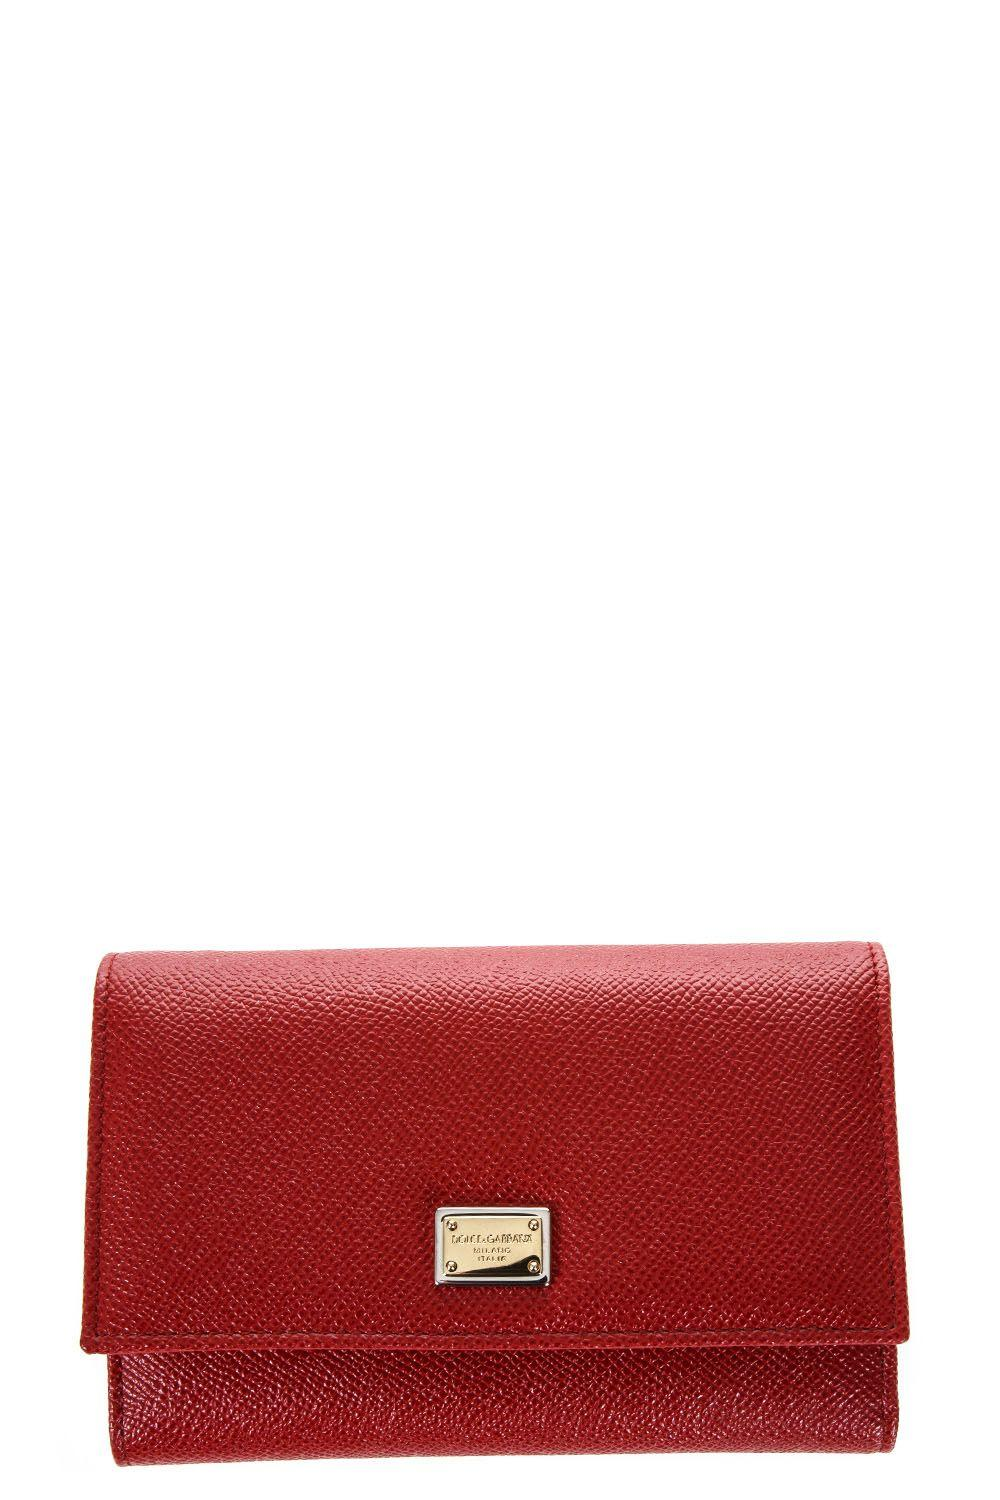 Dolce & Gabbana Leather Wallet With Logo Tag In Red